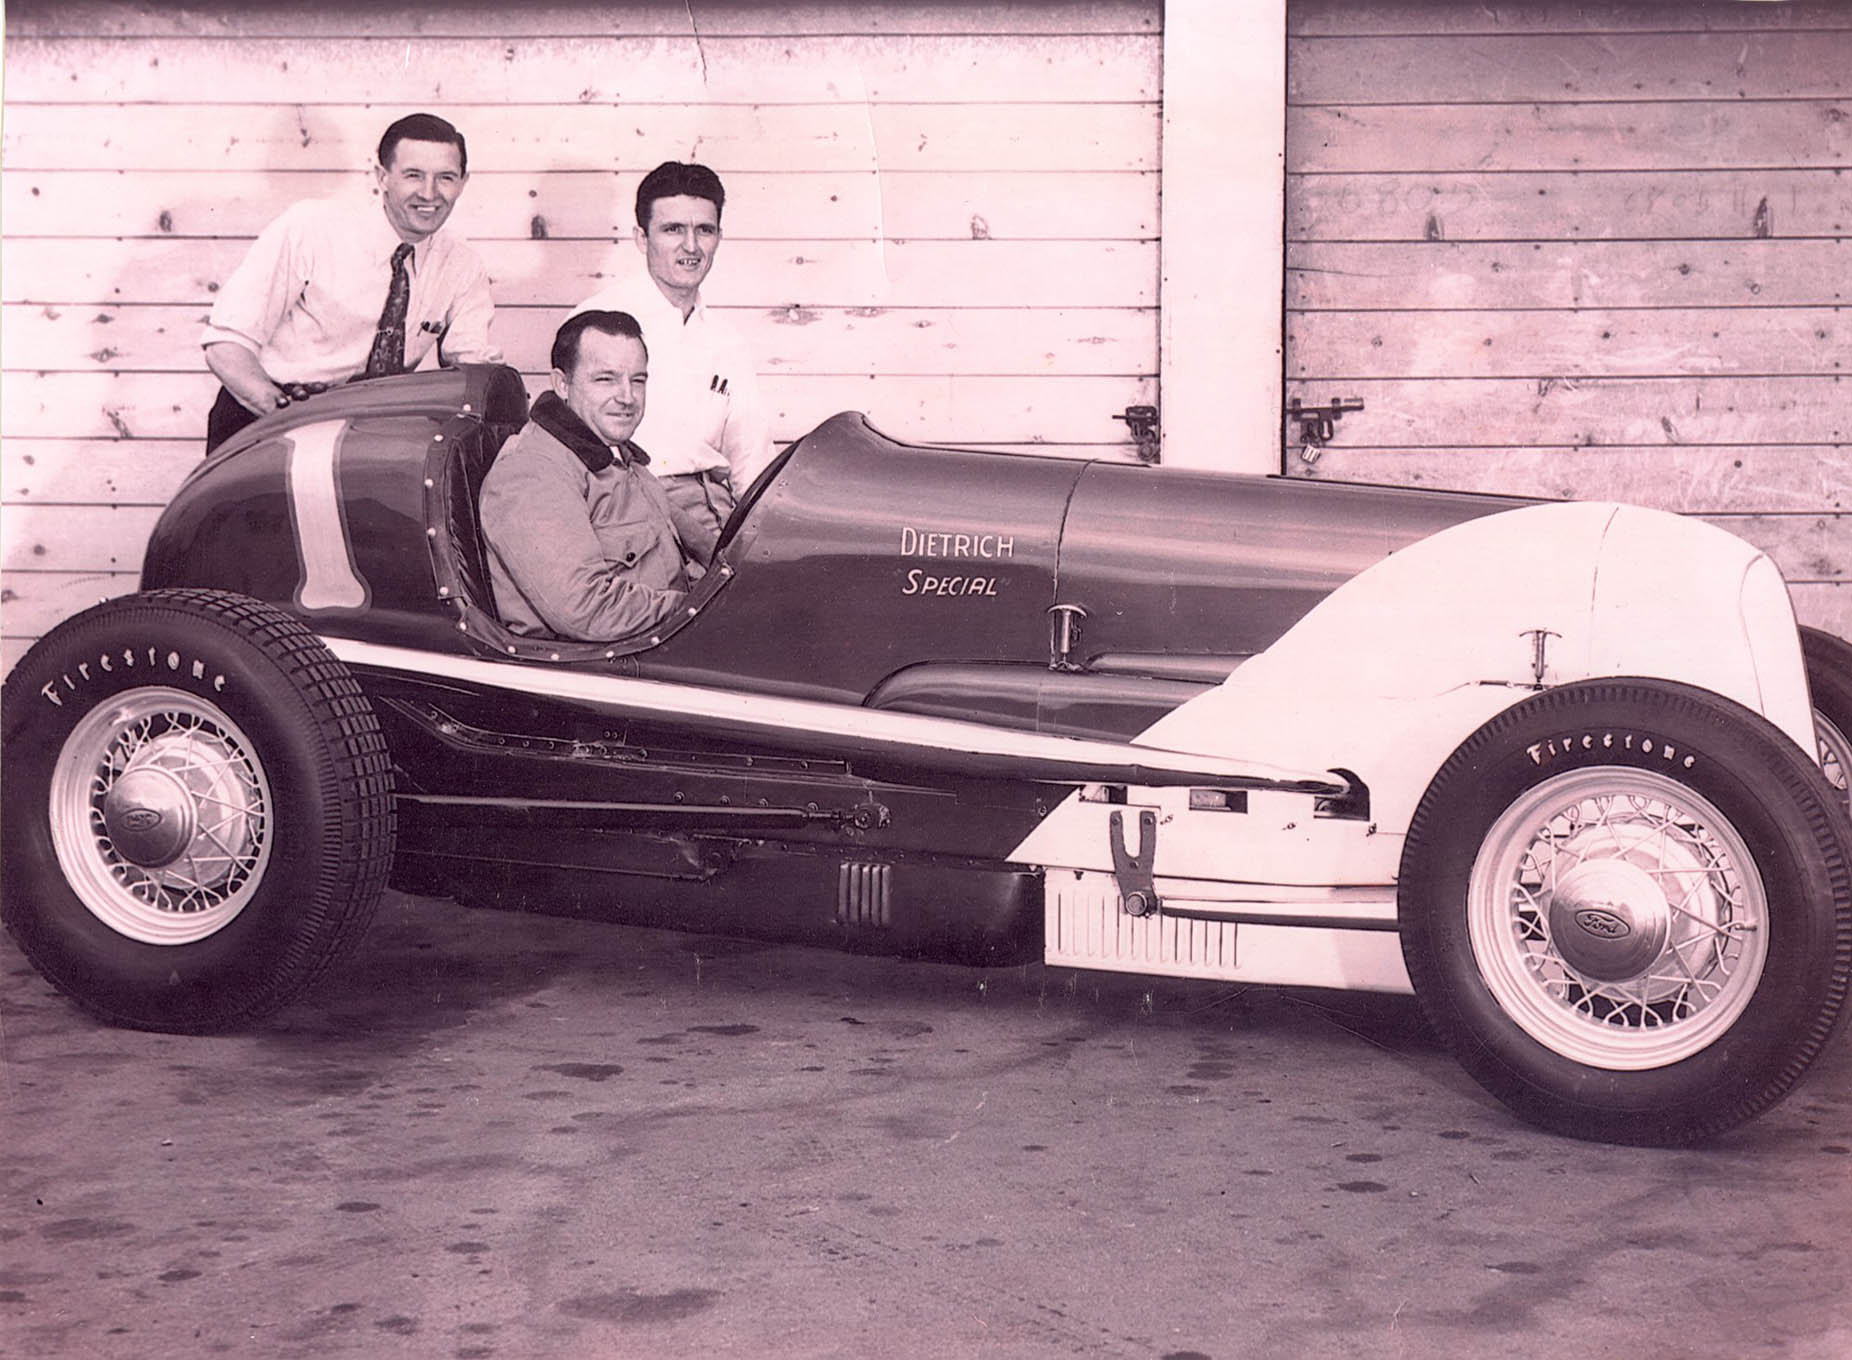 Its 1947 points championship earned the Dietrich-Thomas car the number one for the 1948 season. This photo was taken early in the year, as the car still has its Pontiac grille.